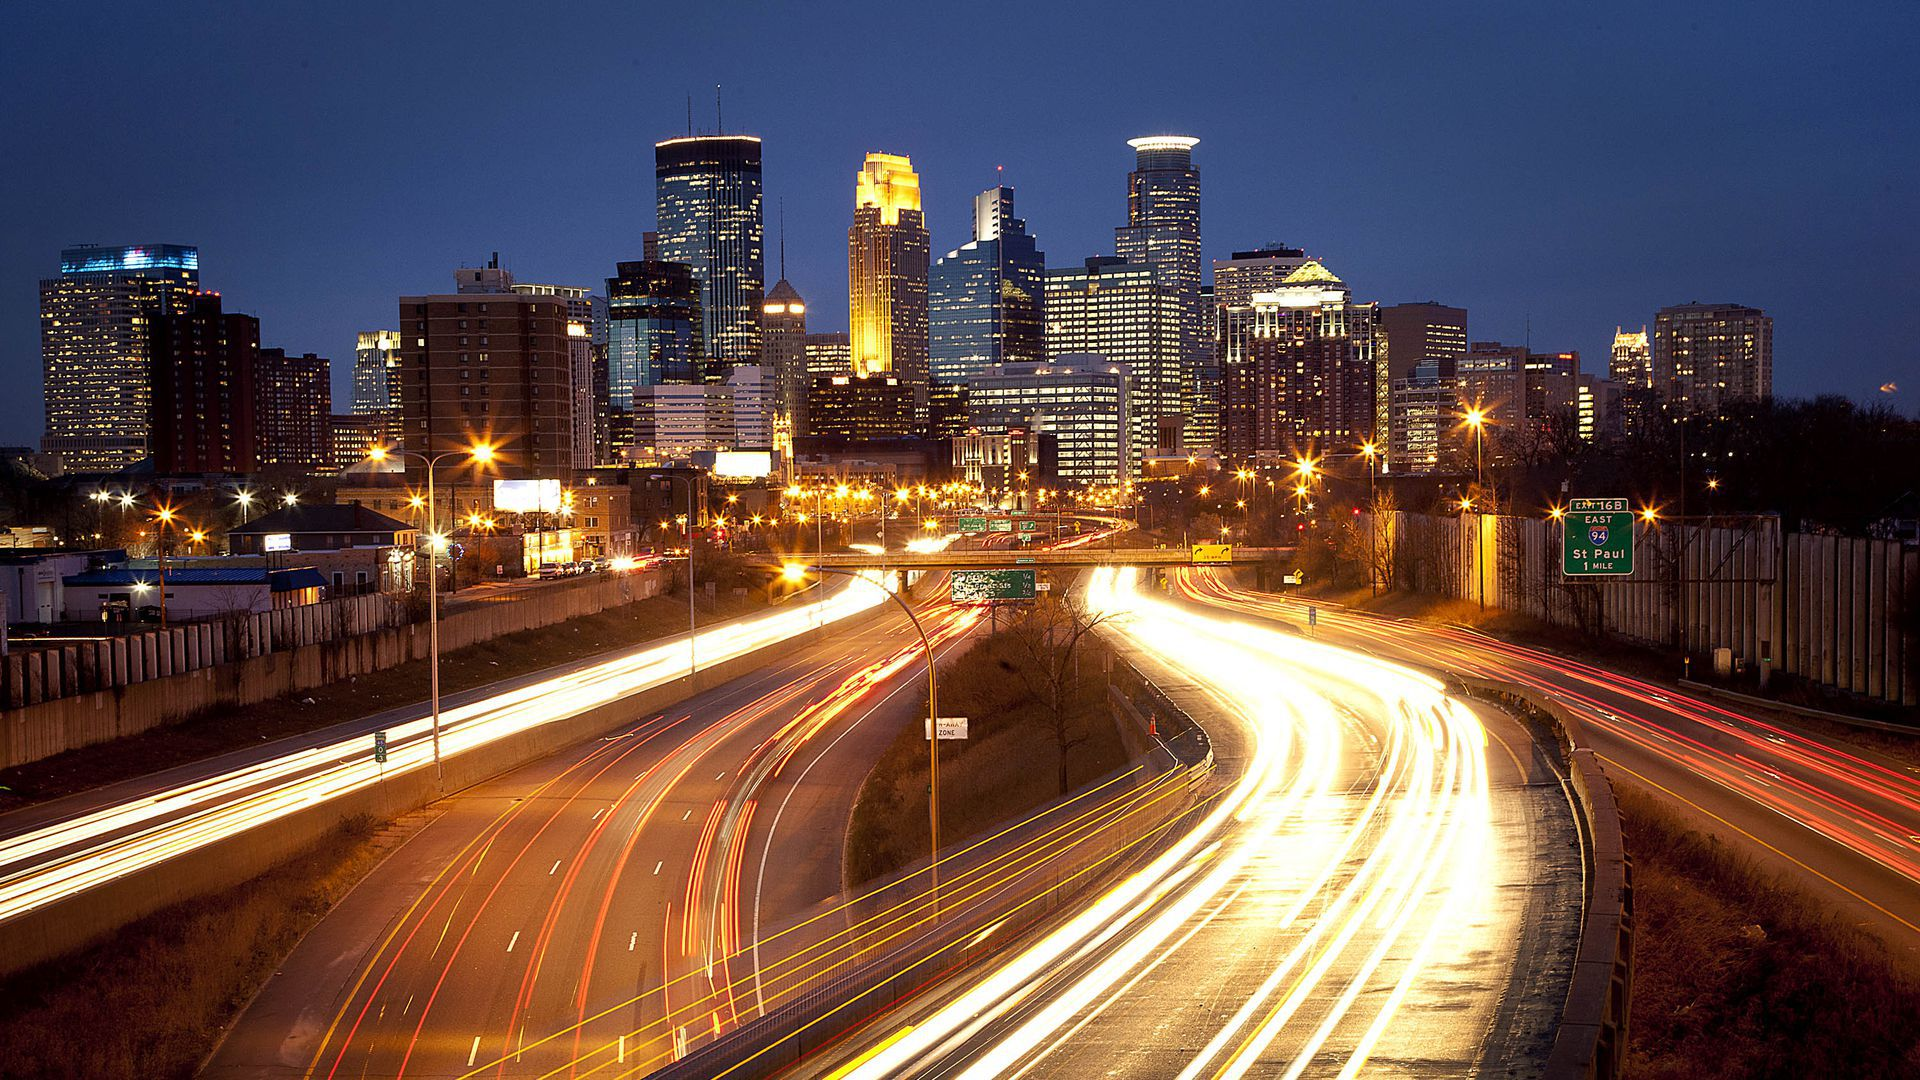 This is a photo of the Minneapolis skyline at night